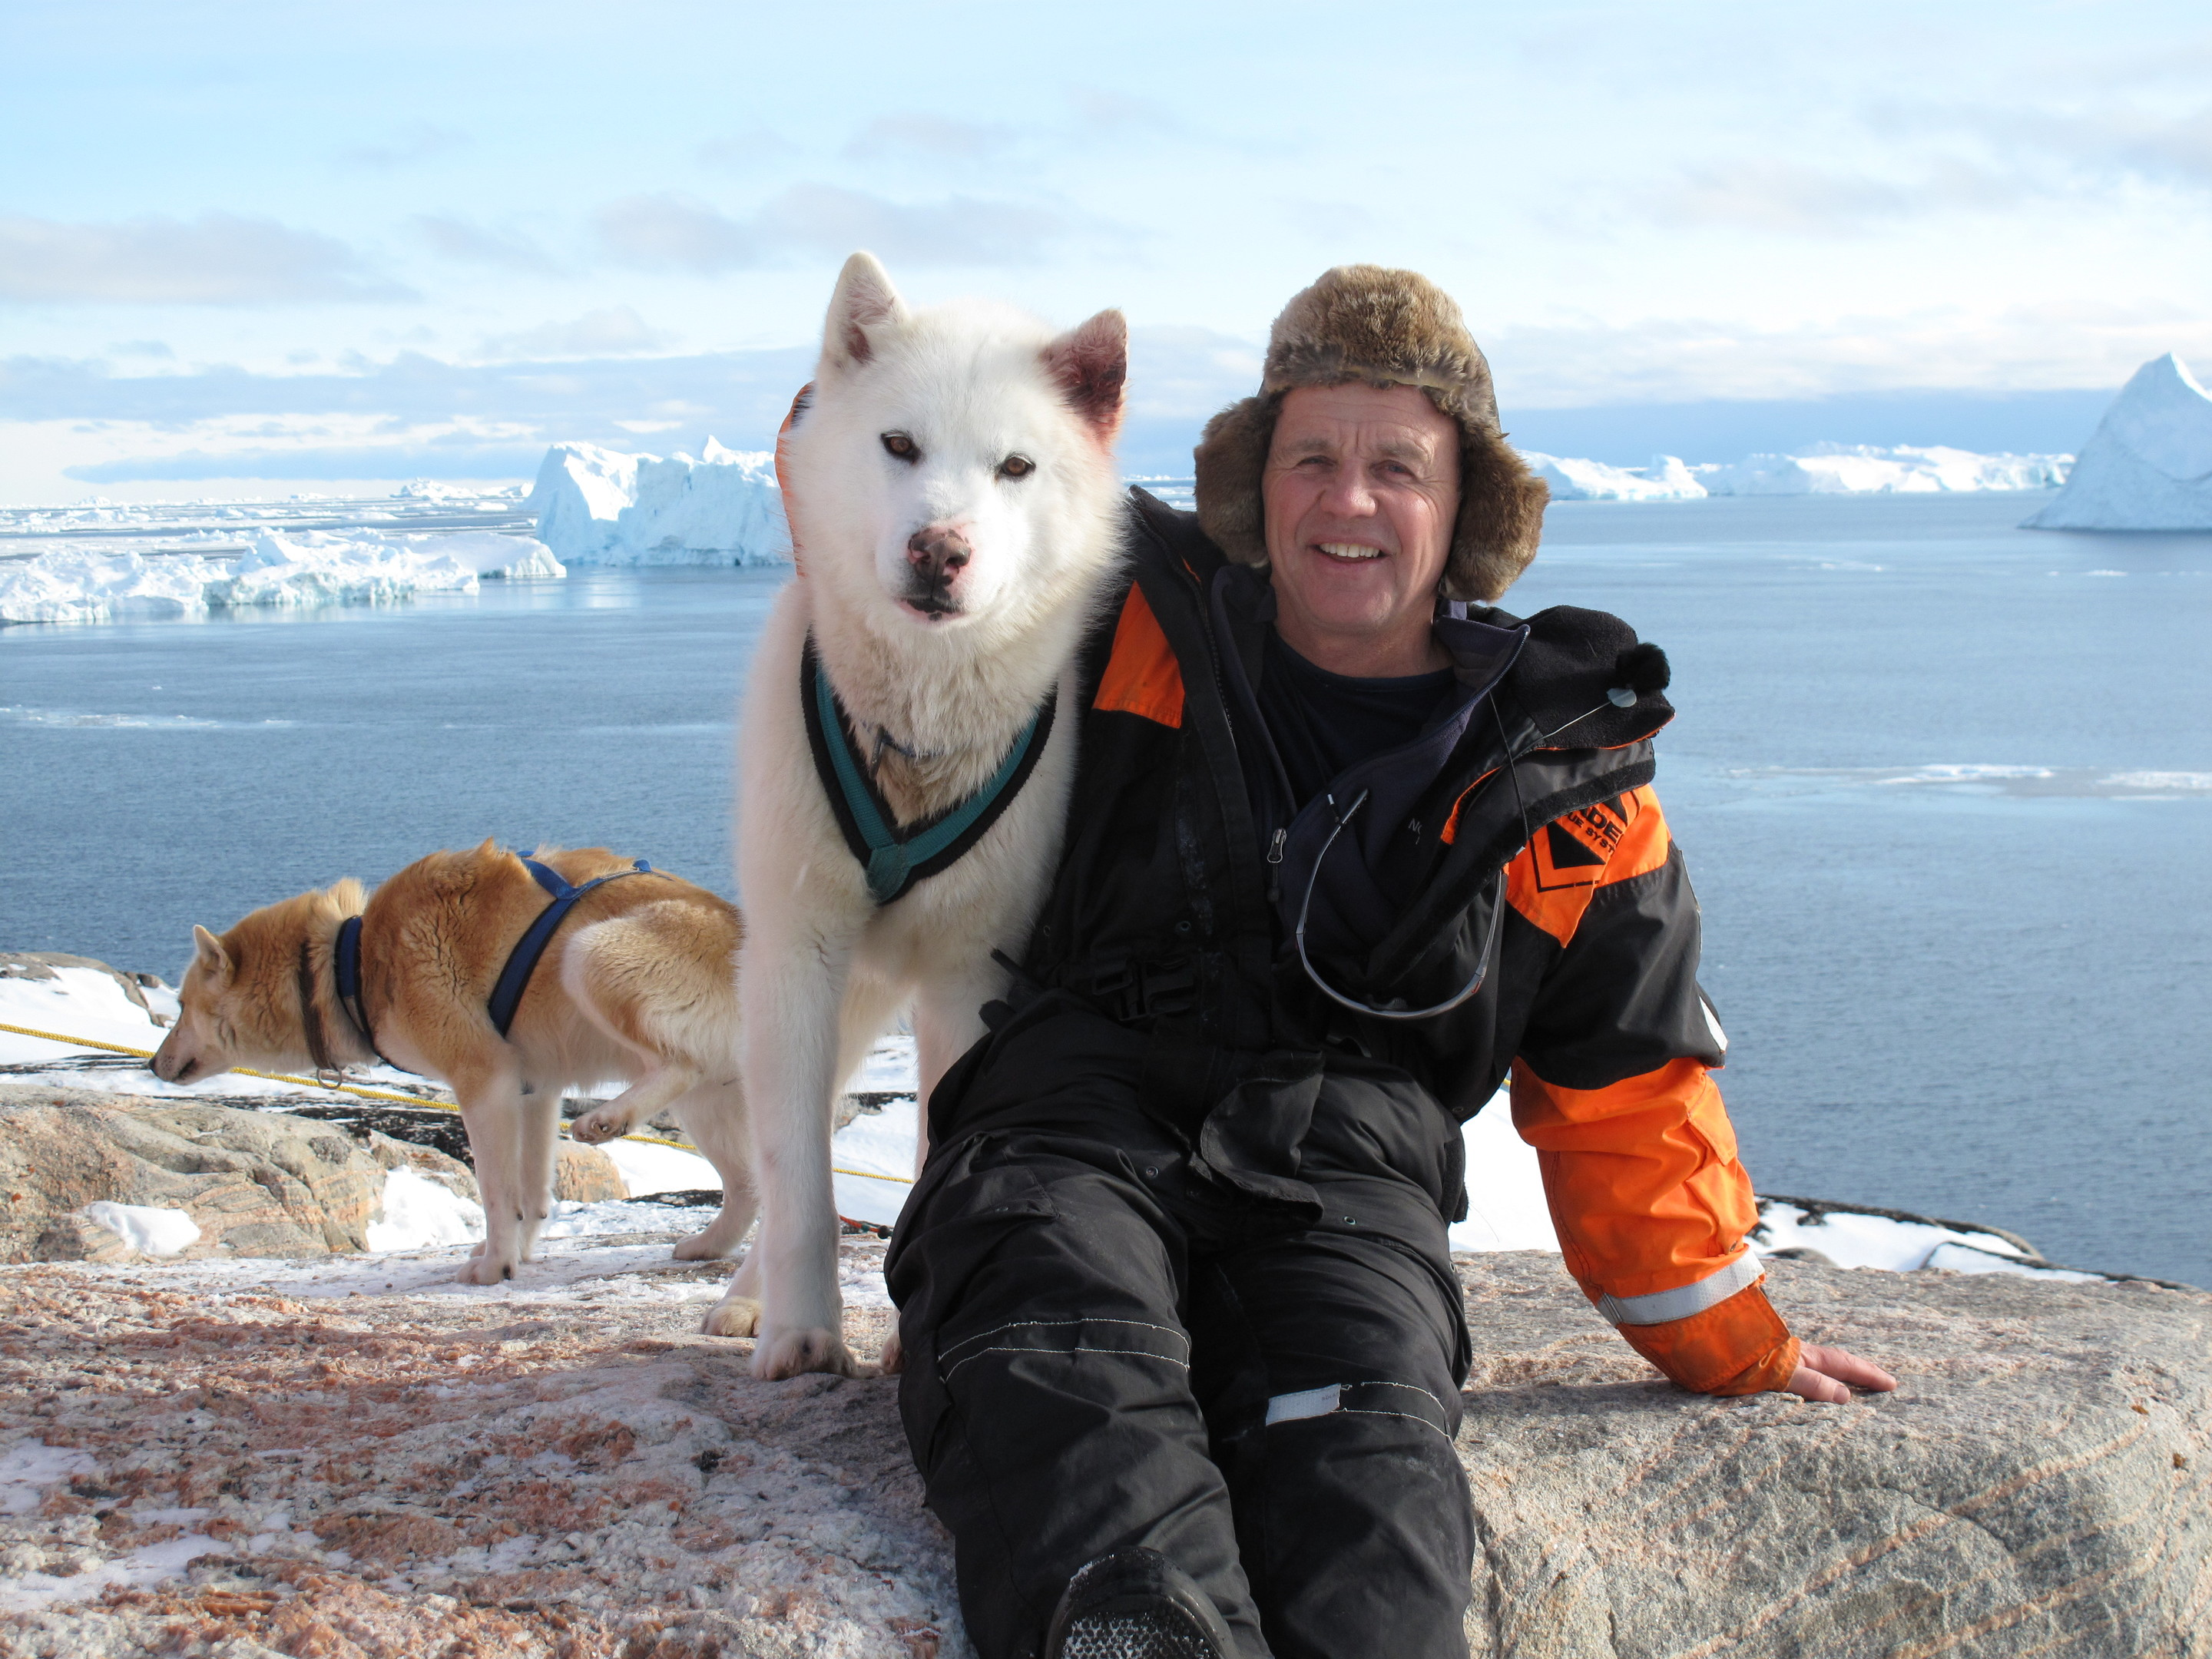 Doug and a husky in Greenland